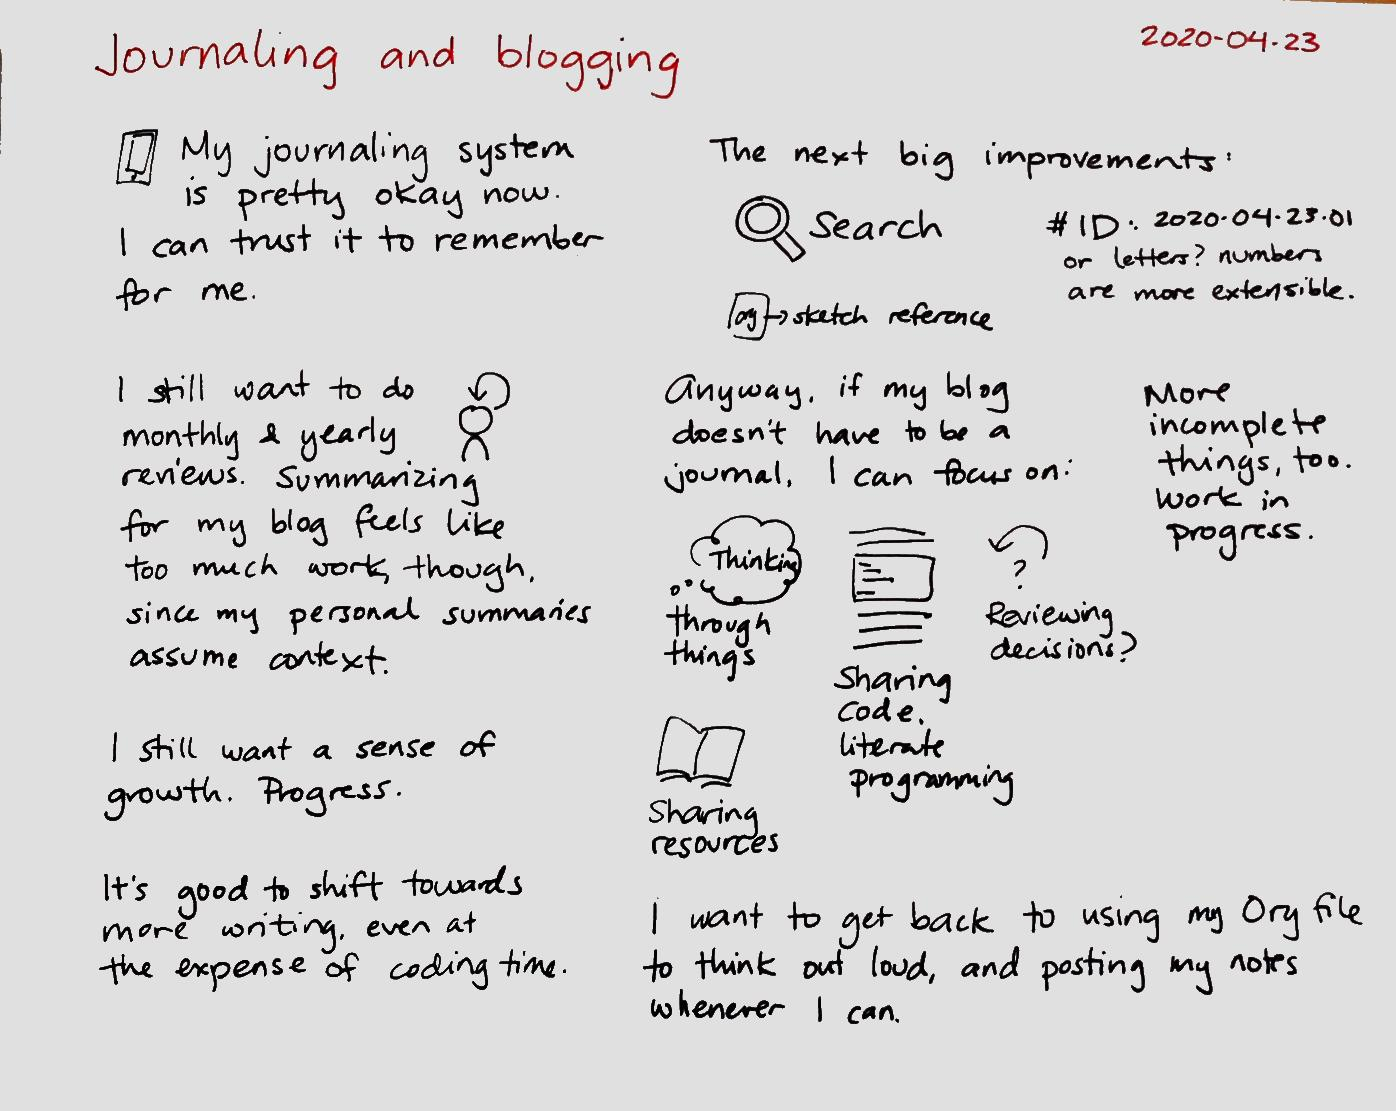 2020-04-23 Journaling and blogging.png